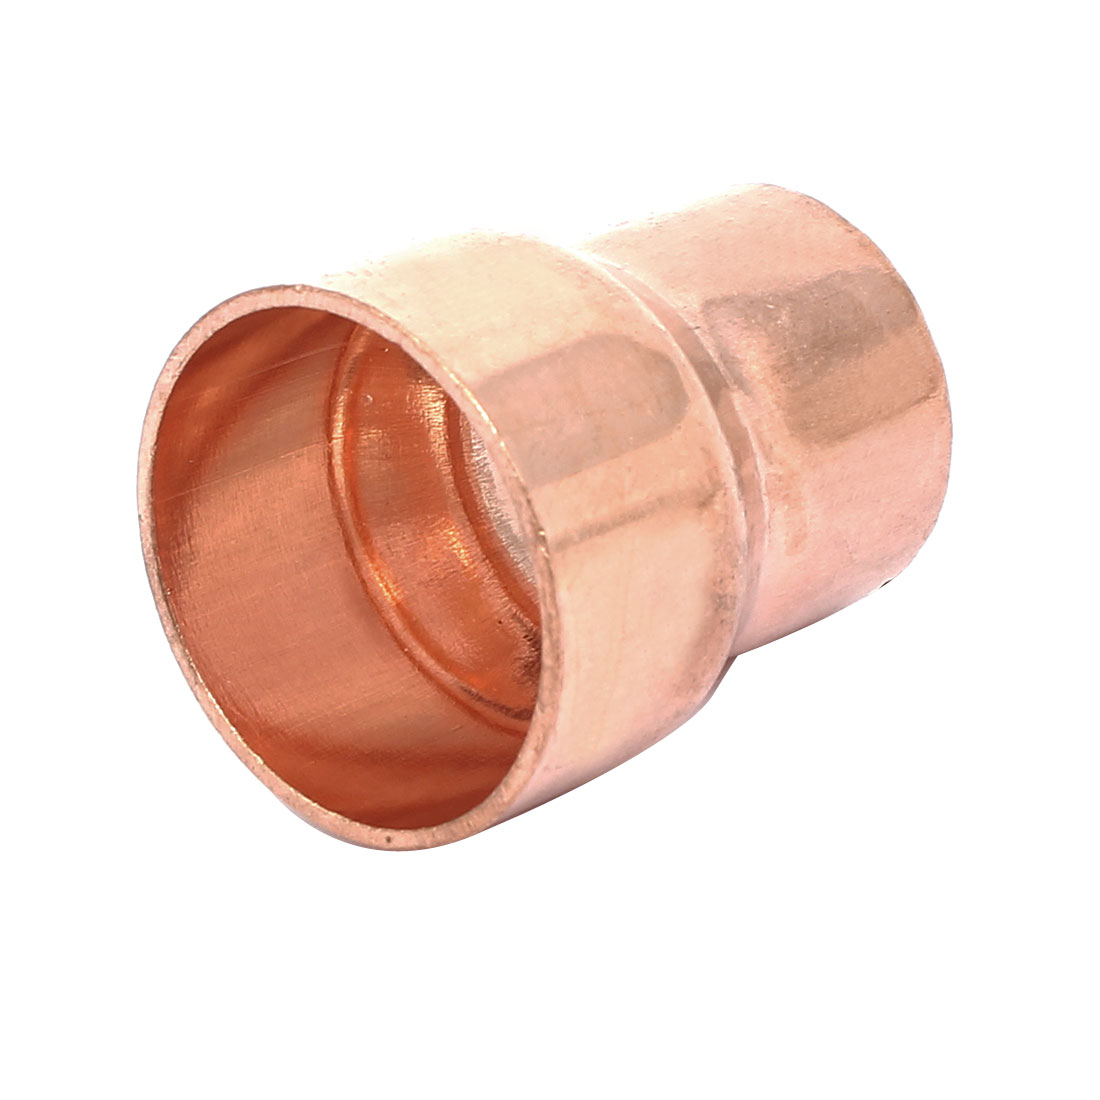 28mmx22mm Tube Air Conditioner Copper Reducer Straight Fitting